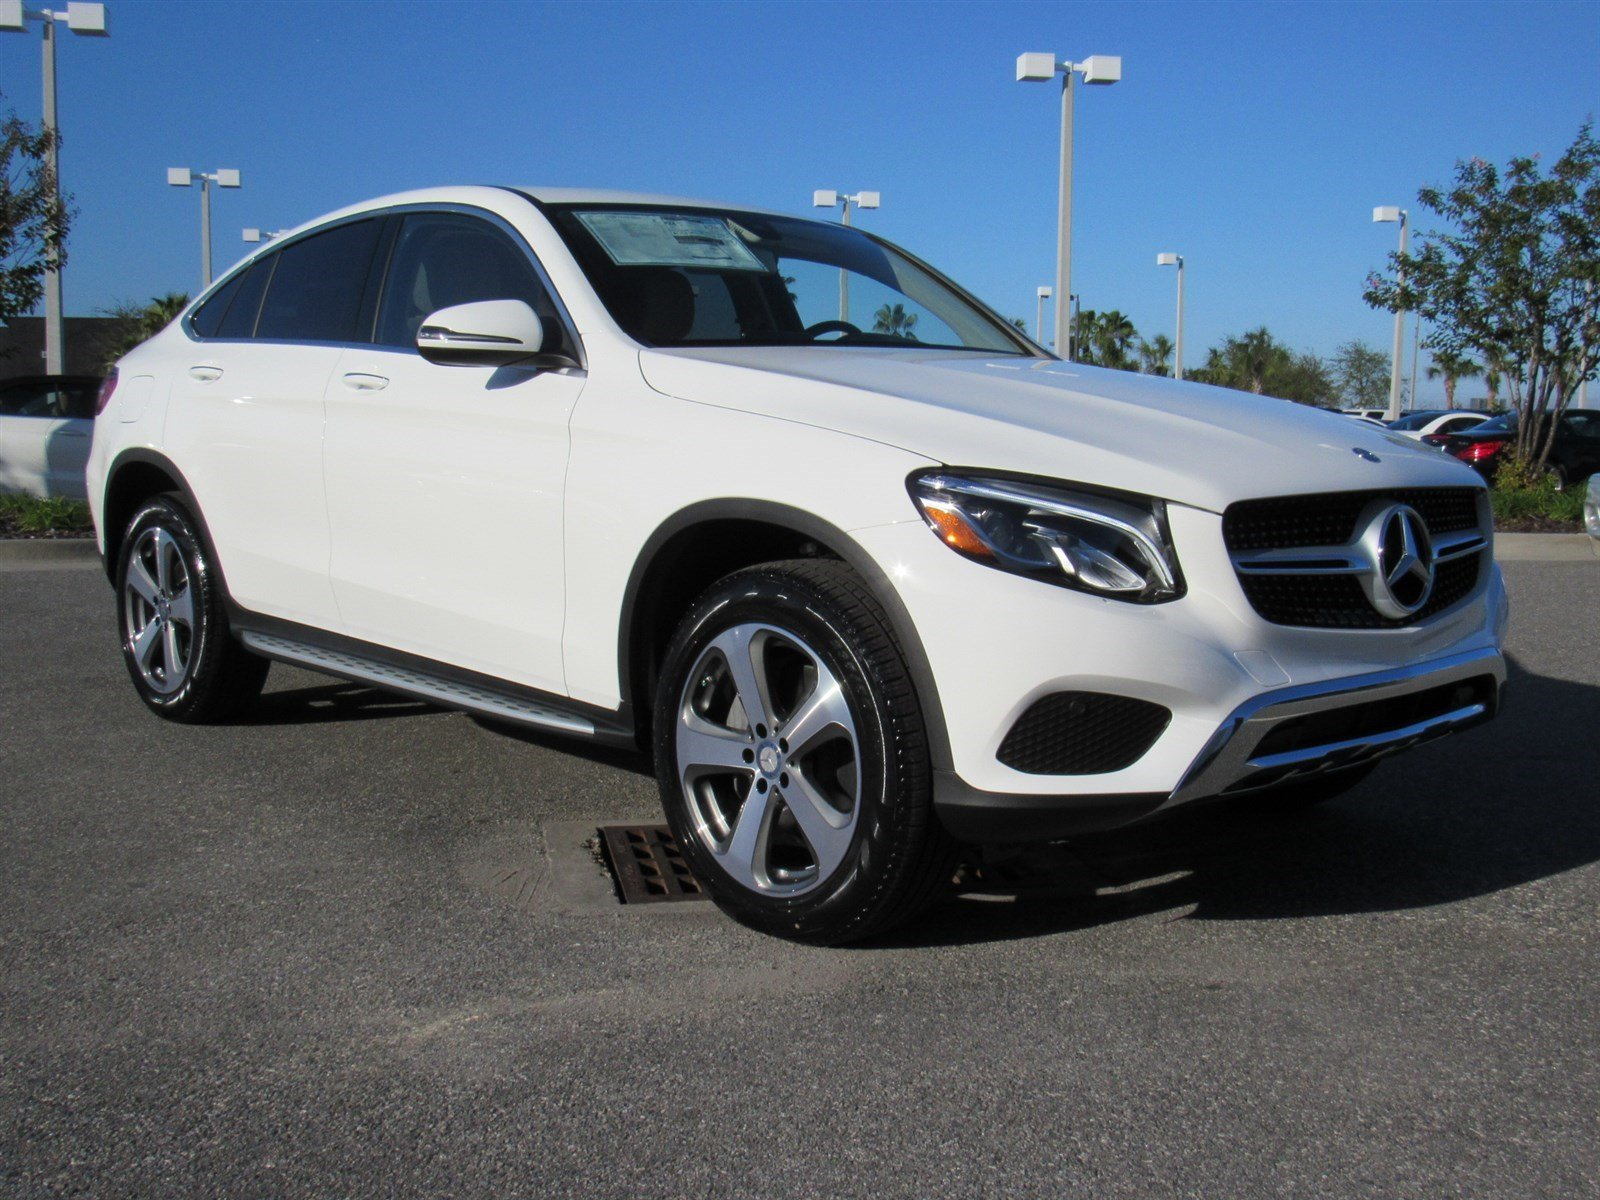 new 2017 mercedes benz glc glc300 coupe in daytona beach hf200982 mercedes benz of daytona beach. Black Bedroom Furniture Sets. Home Design Ideas